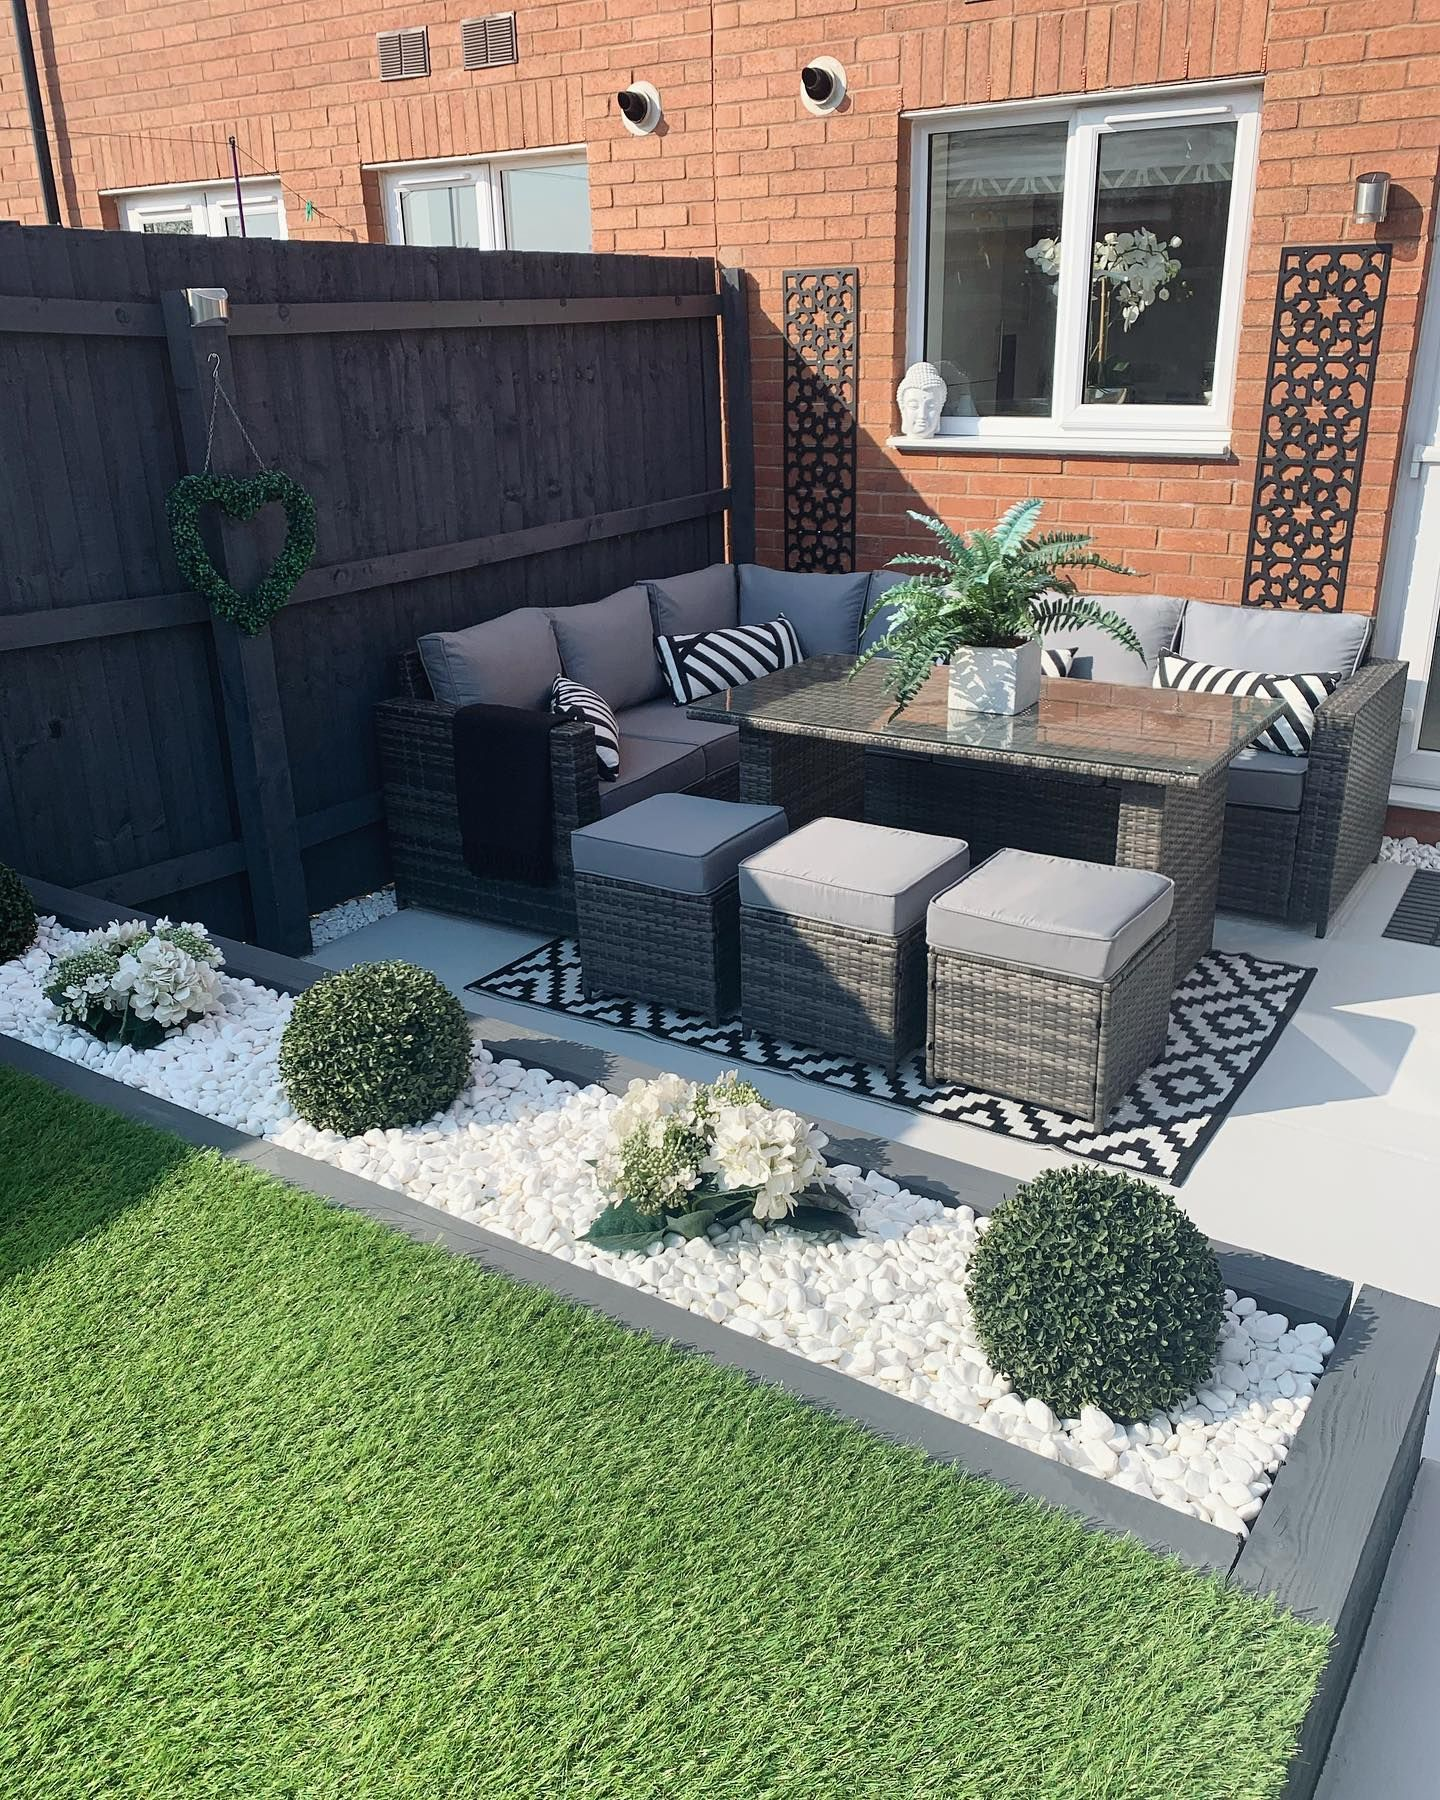 kalahari artificial grass in 2020 outdoor patio designs on wow awesome backyard patio designs ideas for copy id=32303